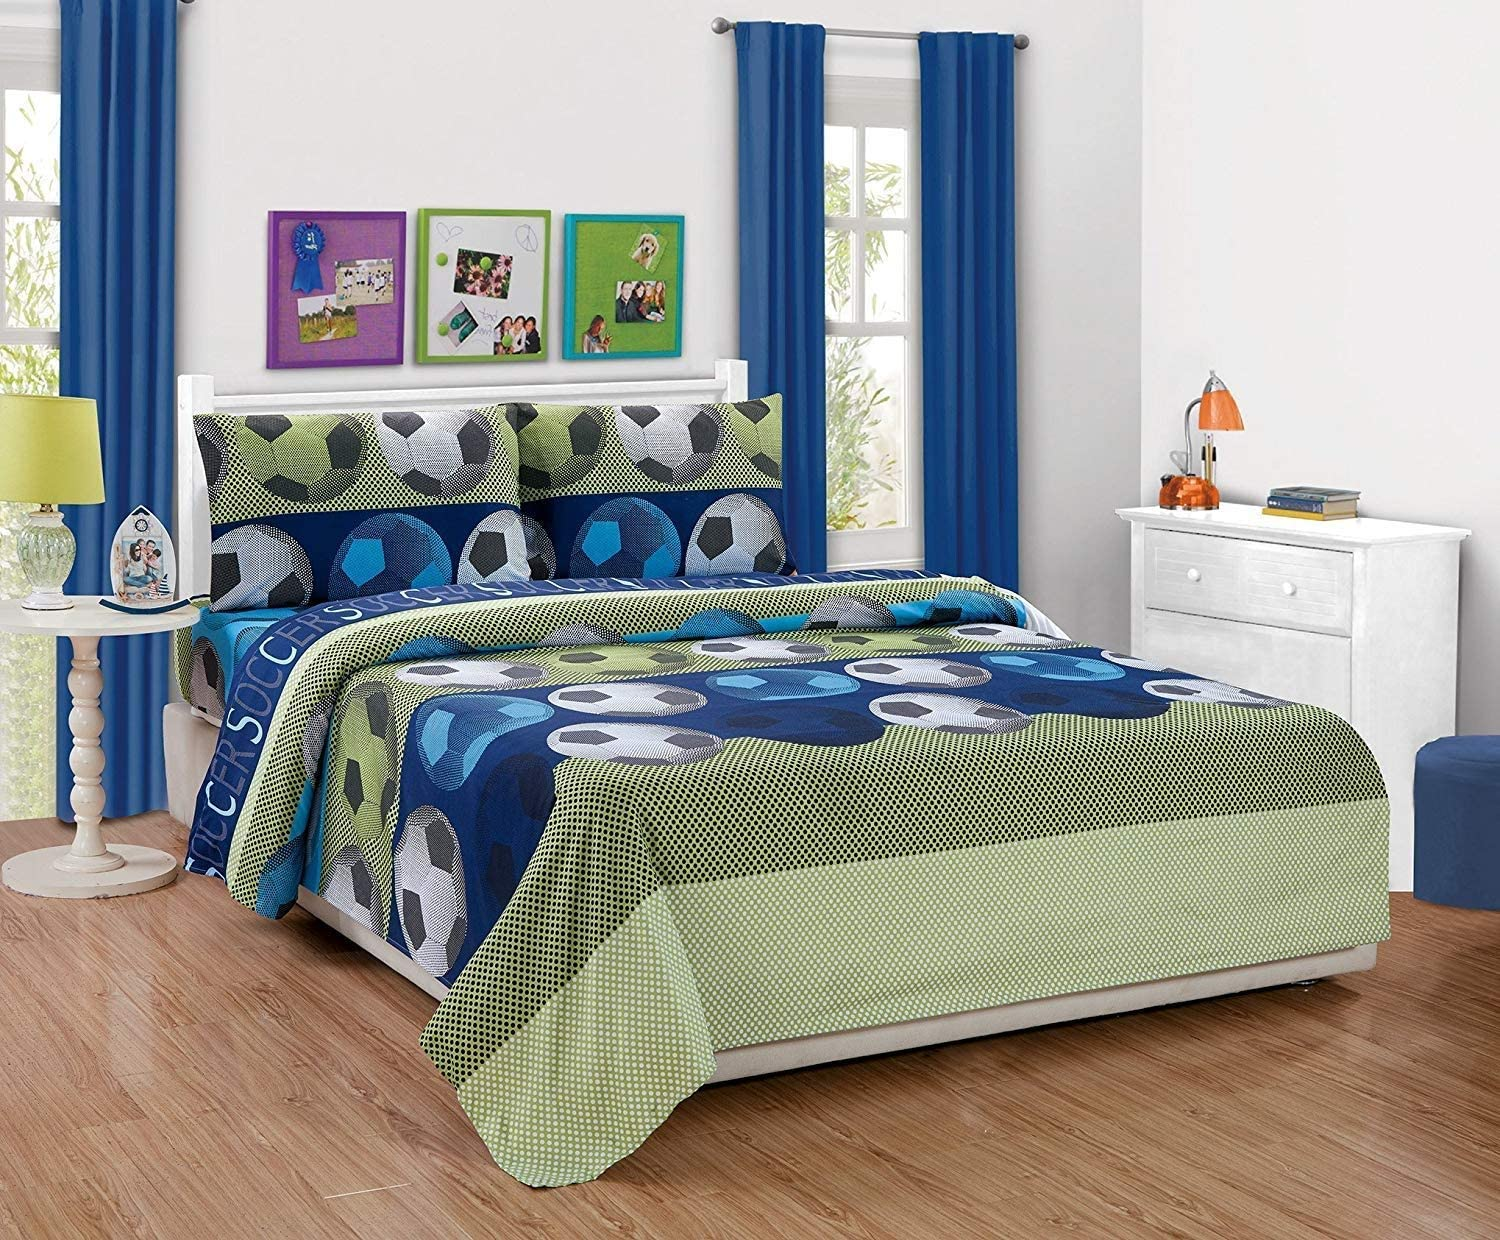 Elegant Home Blue Green White Black Soccer Balls Design 3 Piece Printed Sheet Set with Pillowcases Flat Fitted Sheet for Boys/Kids(Soccer Ball, Twin)